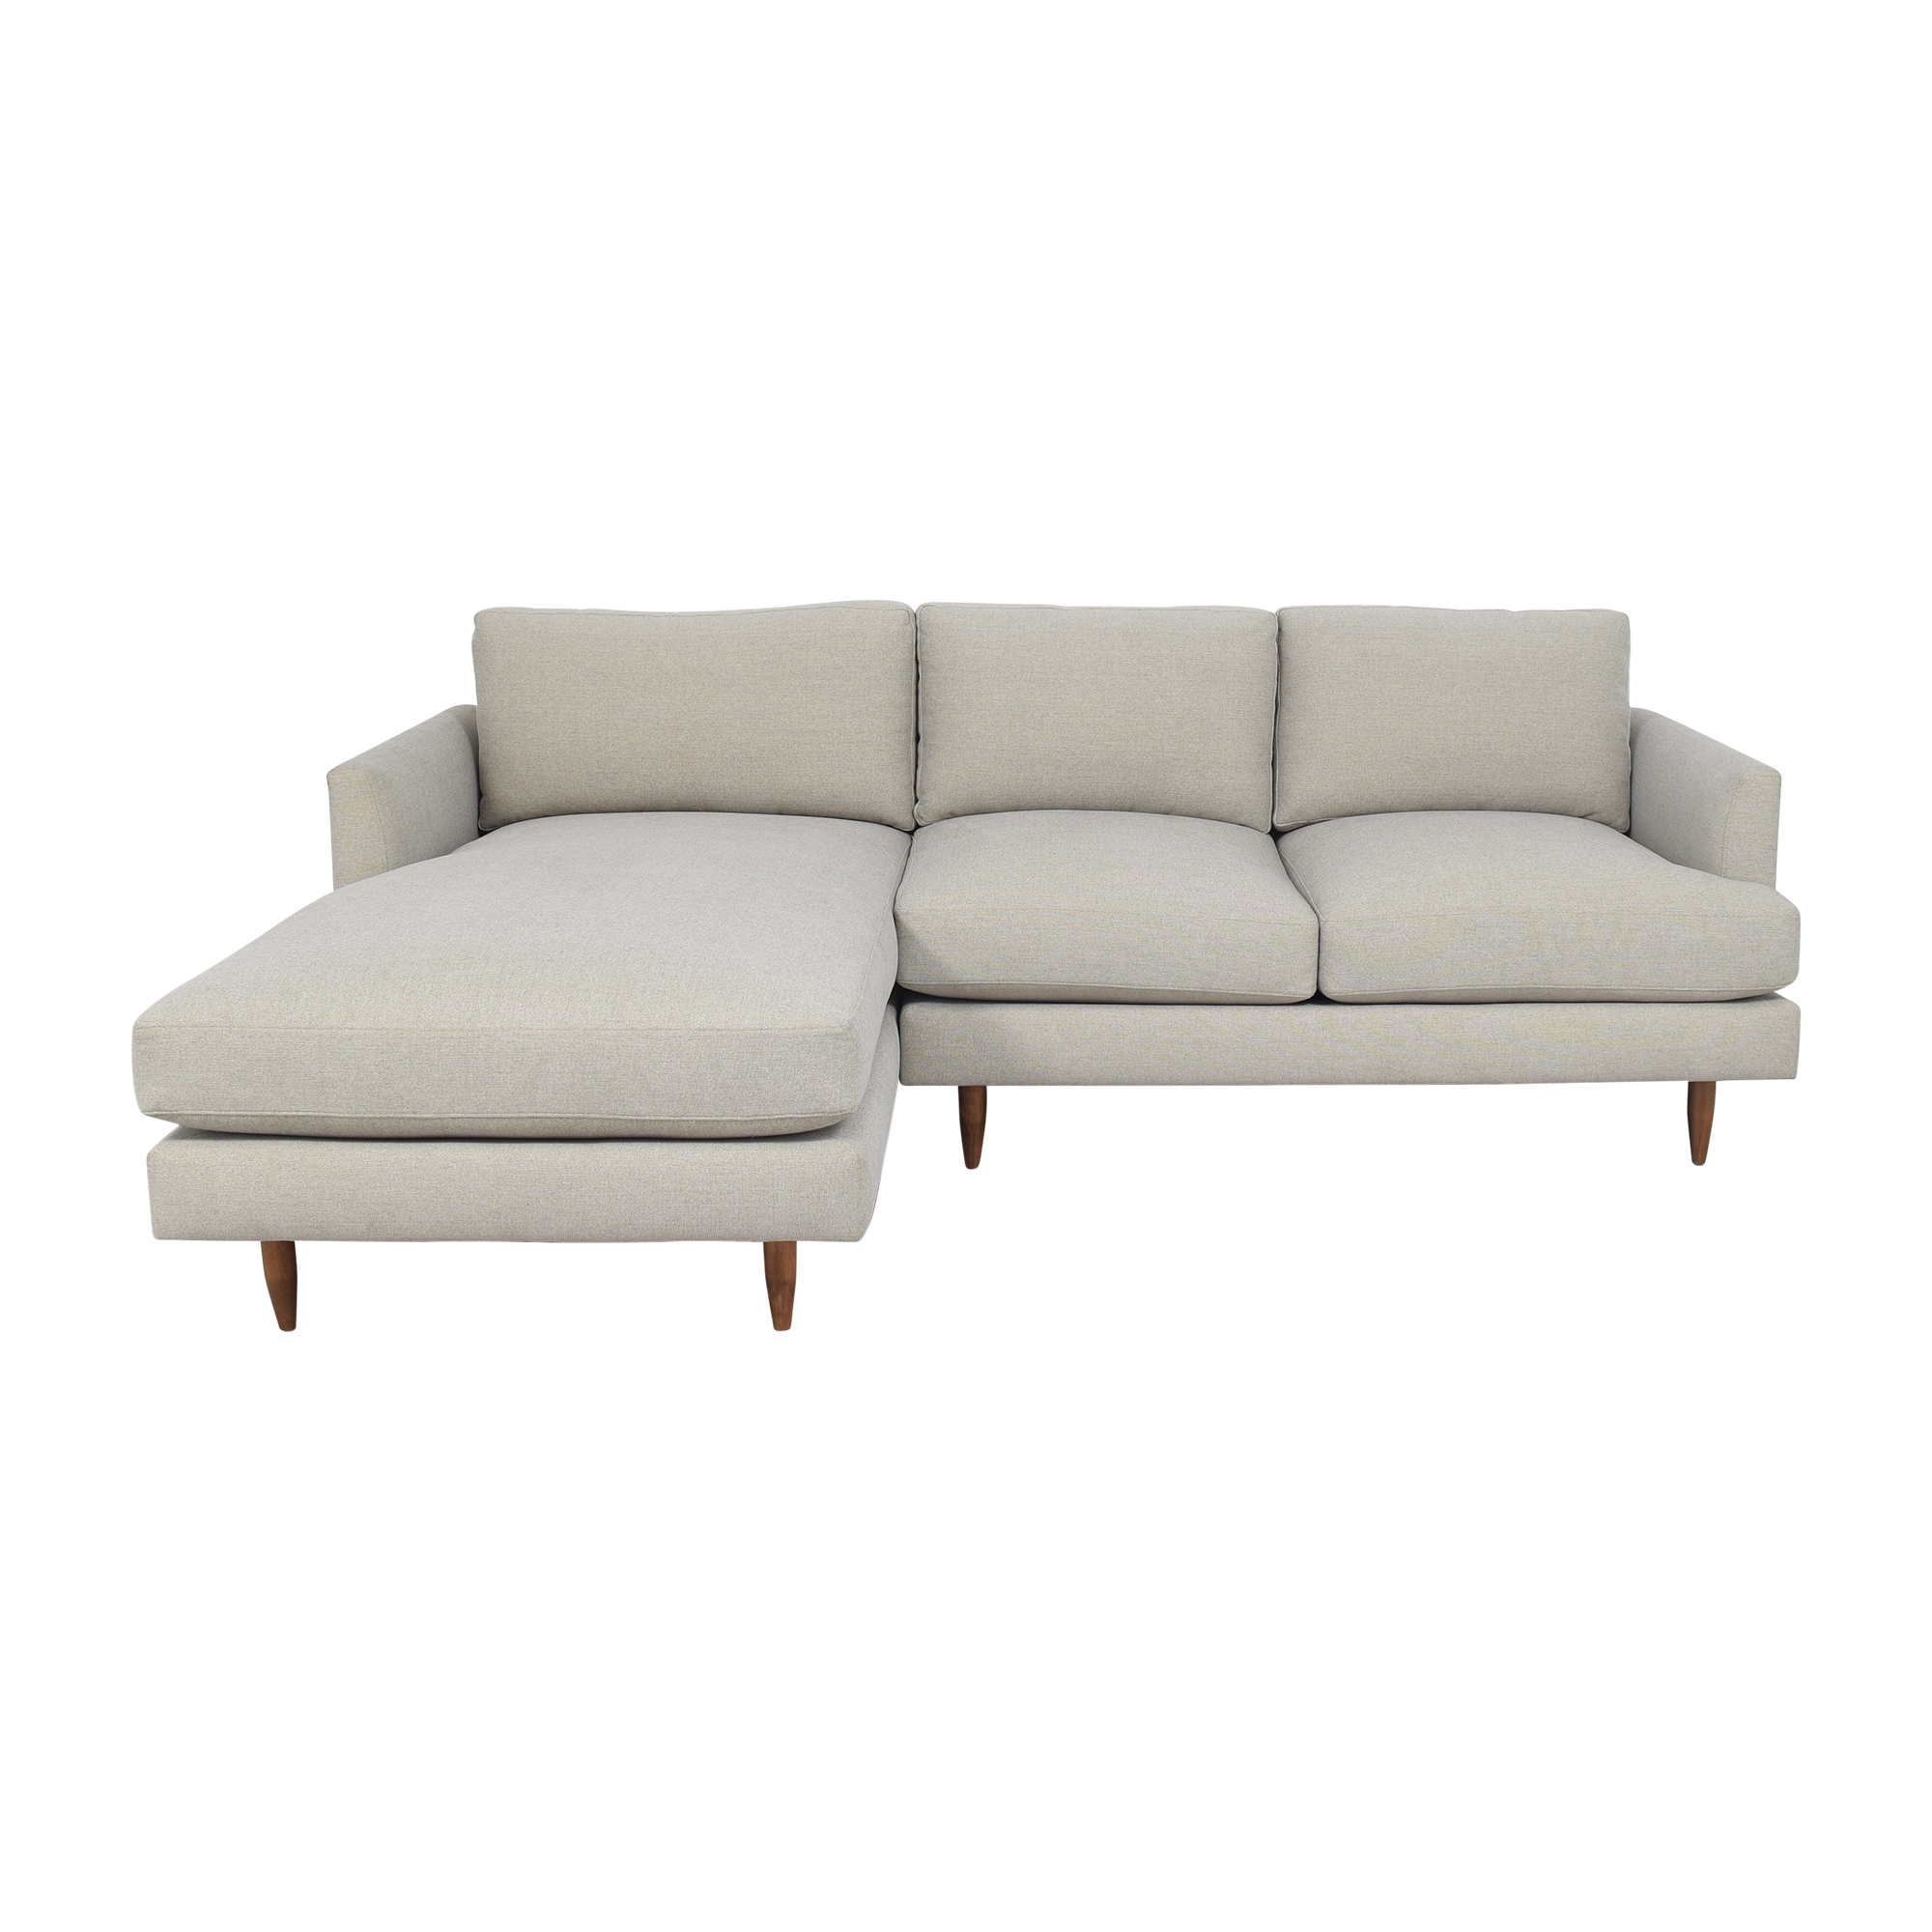 BenchMade Modern BenchMade Modern Crowd Pleaser Sofa With Chaise discount